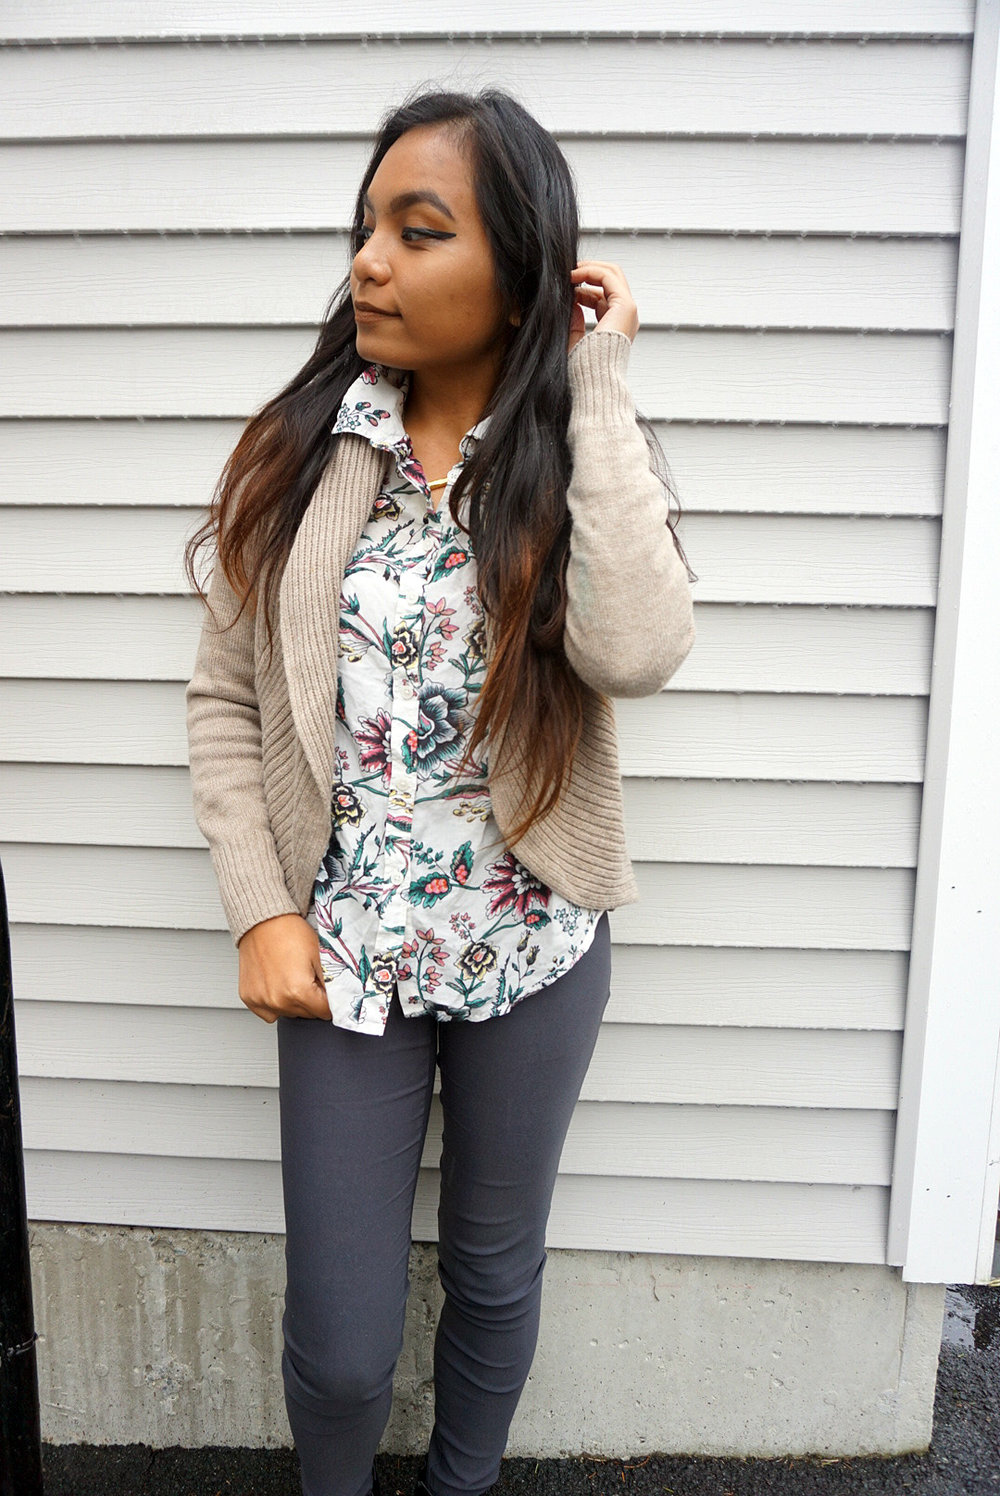 Neutral-Tones-With-Florals-Beige-Cardigan-Floral-Button-Up-Work-Appropriate-Office-Wear-Blogger-Style-LINDATENCHITRAN-11-1616x1080.jpg